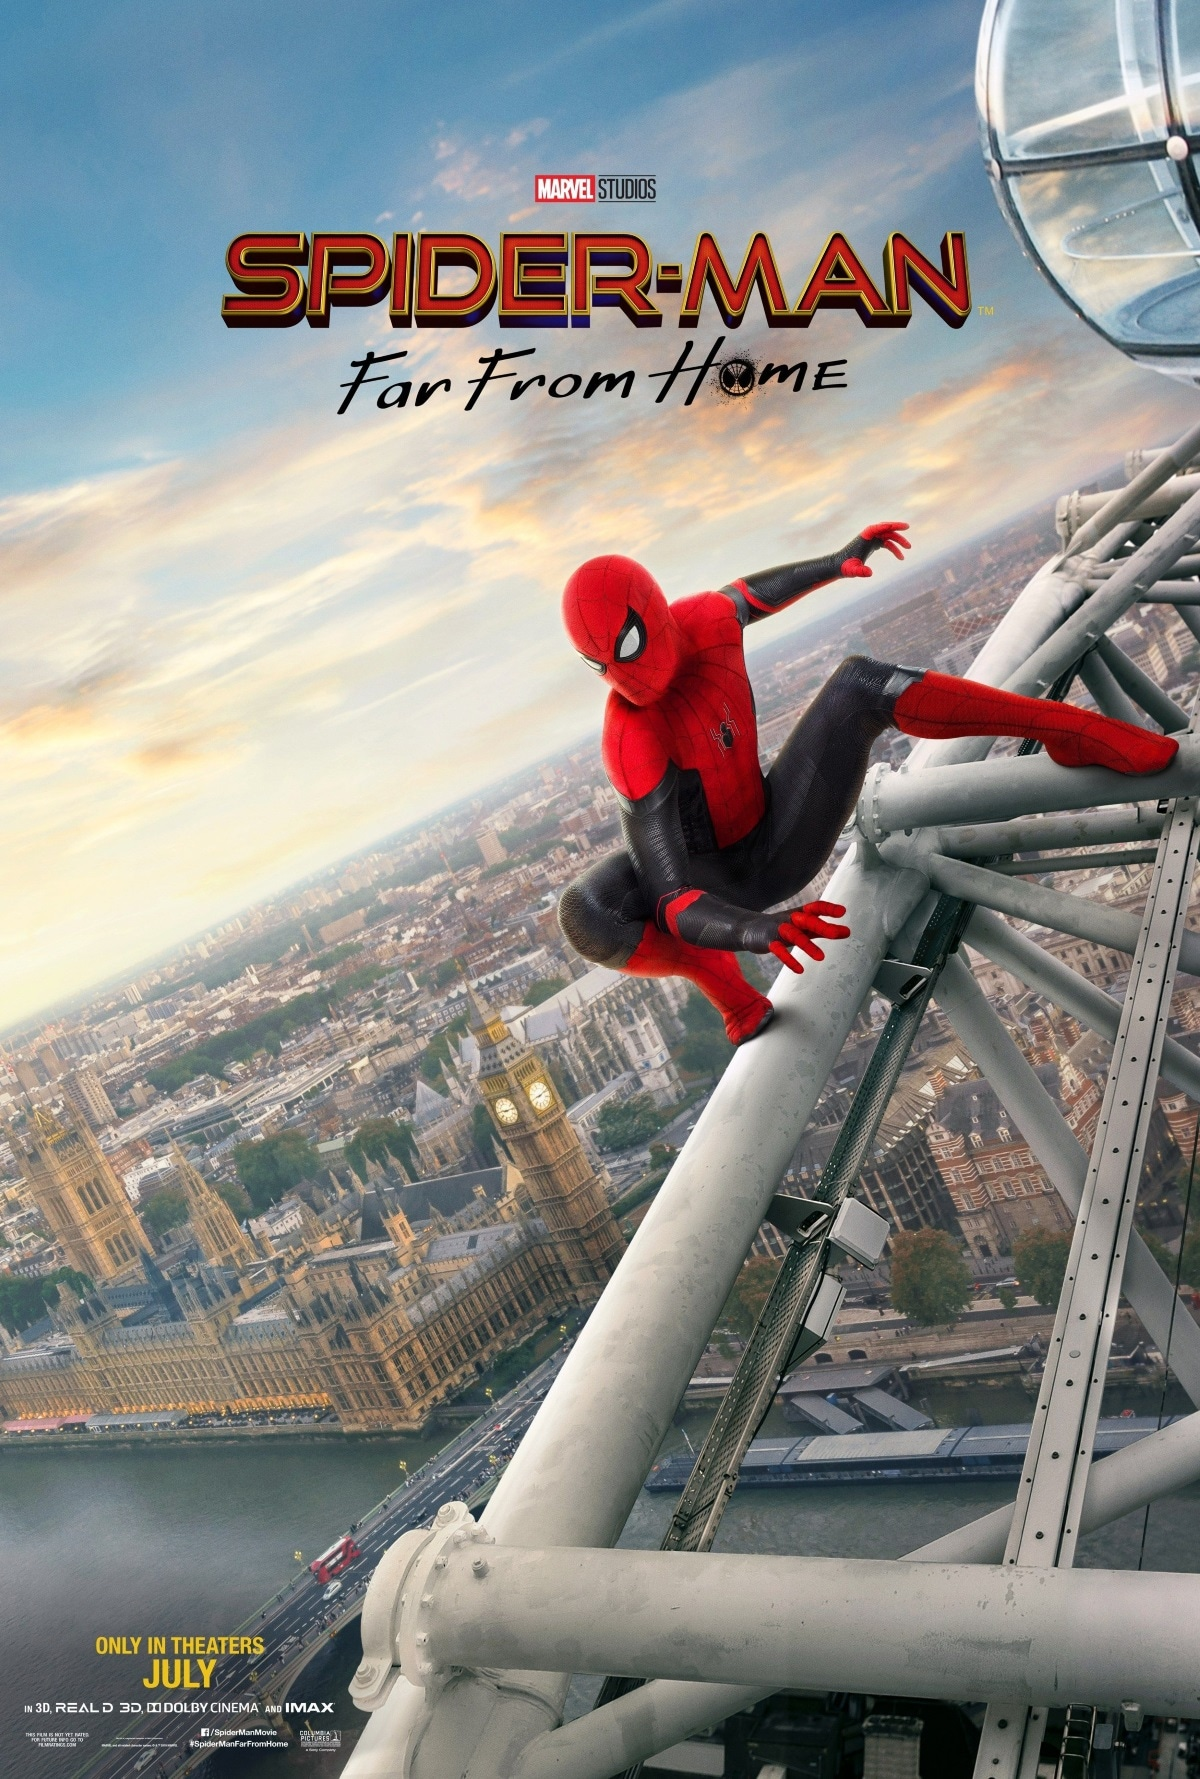 spider man far from home poster london Spider Man Far From Home poster